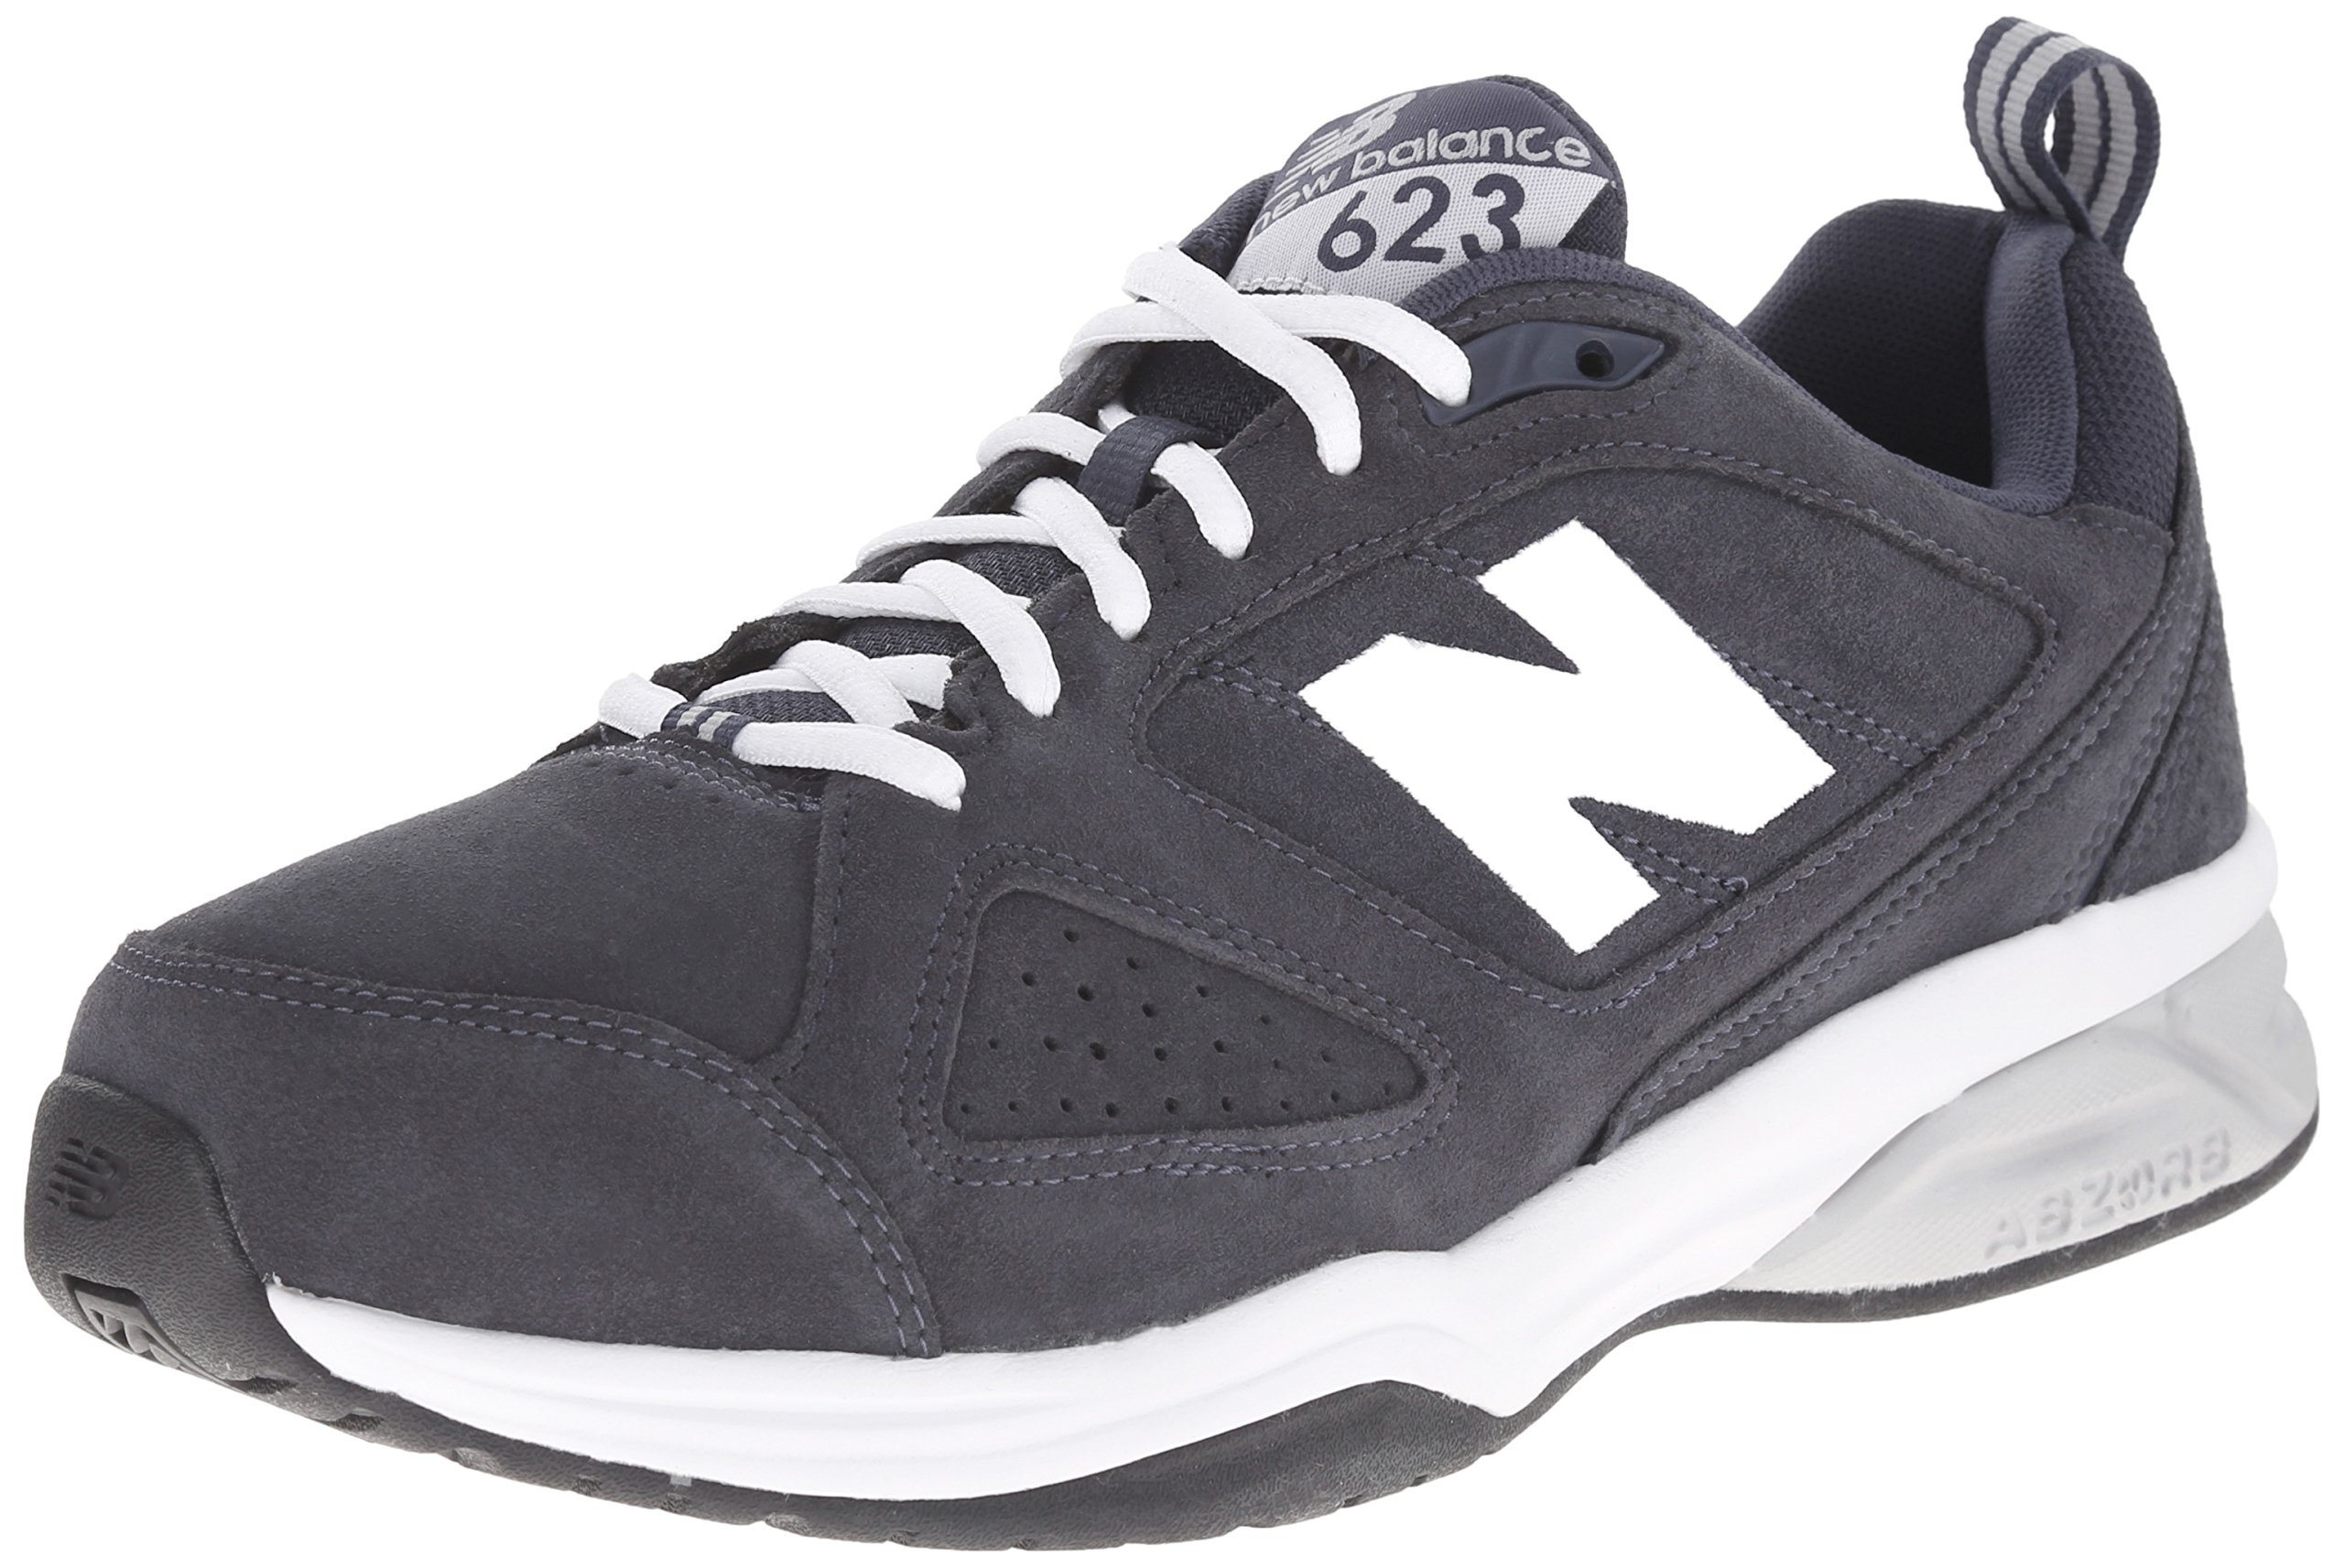 New Balance Men's MX623v3 Training Shoe, Navy, 11.5 D US